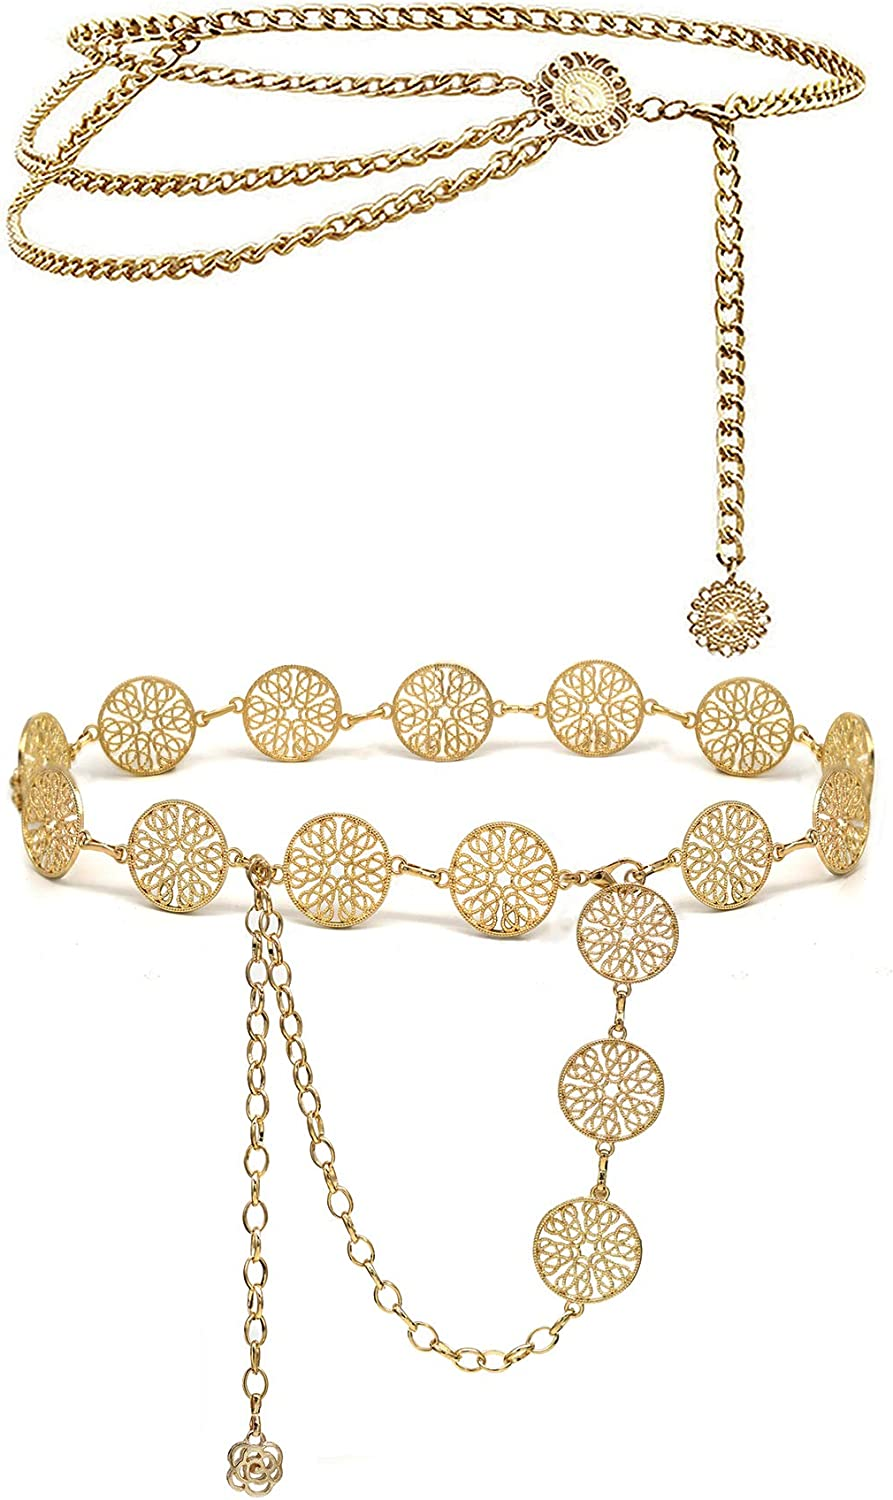 KLZJR Two Designs Sun Flowers Alloy Waist Chain Crystal Body Chain for Women and Ladies